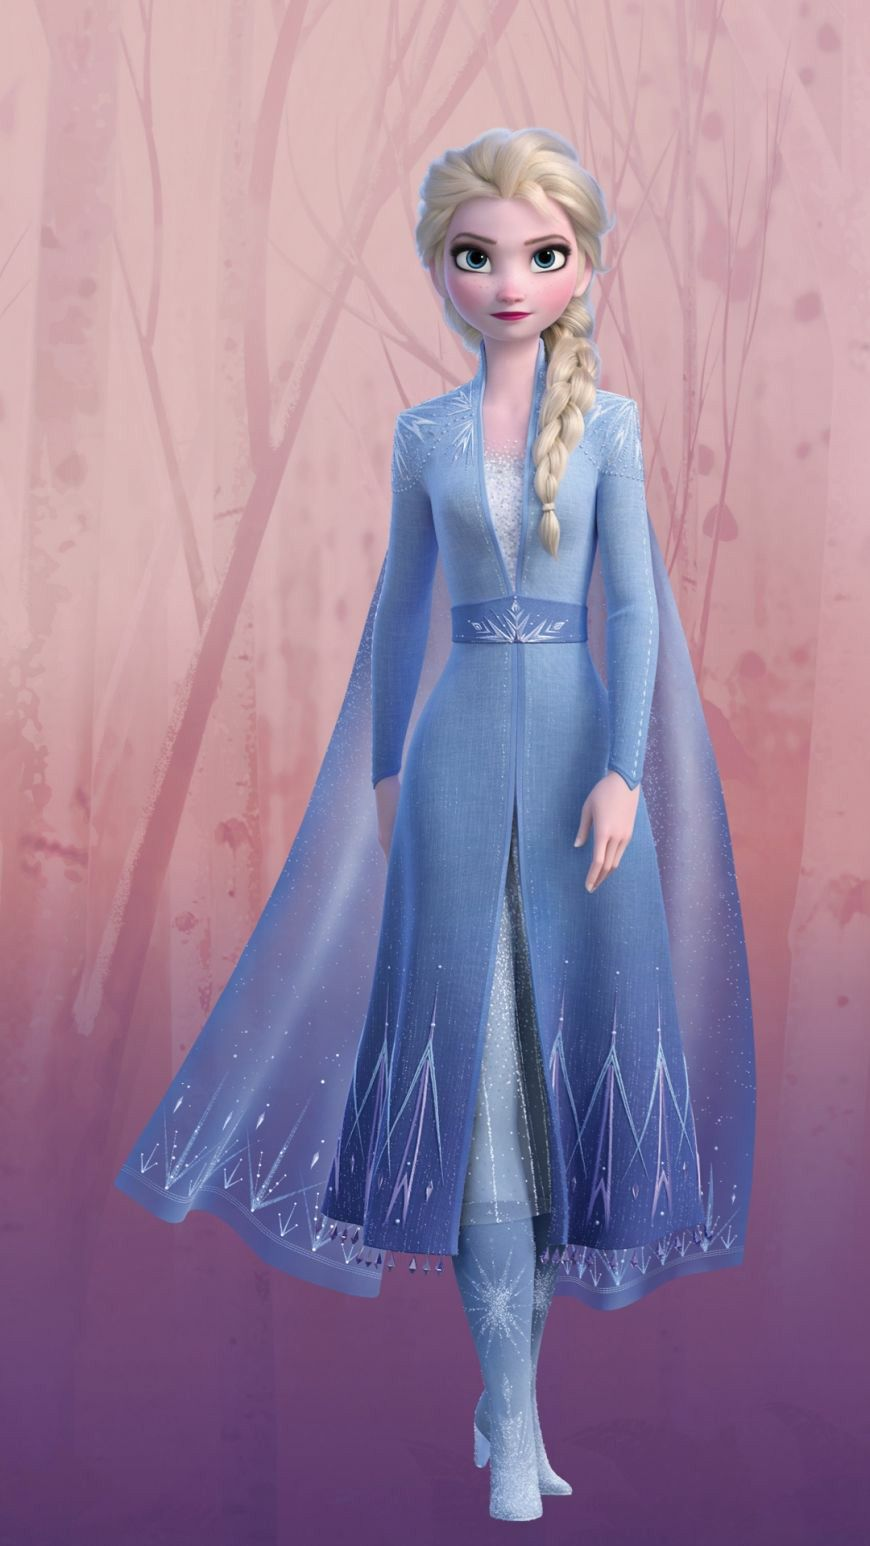 Pin By Liv Torres On Wallpaper Phone In 2020 Disney Princess Elsa Disney Princess Frozen Frozen Disney Movie